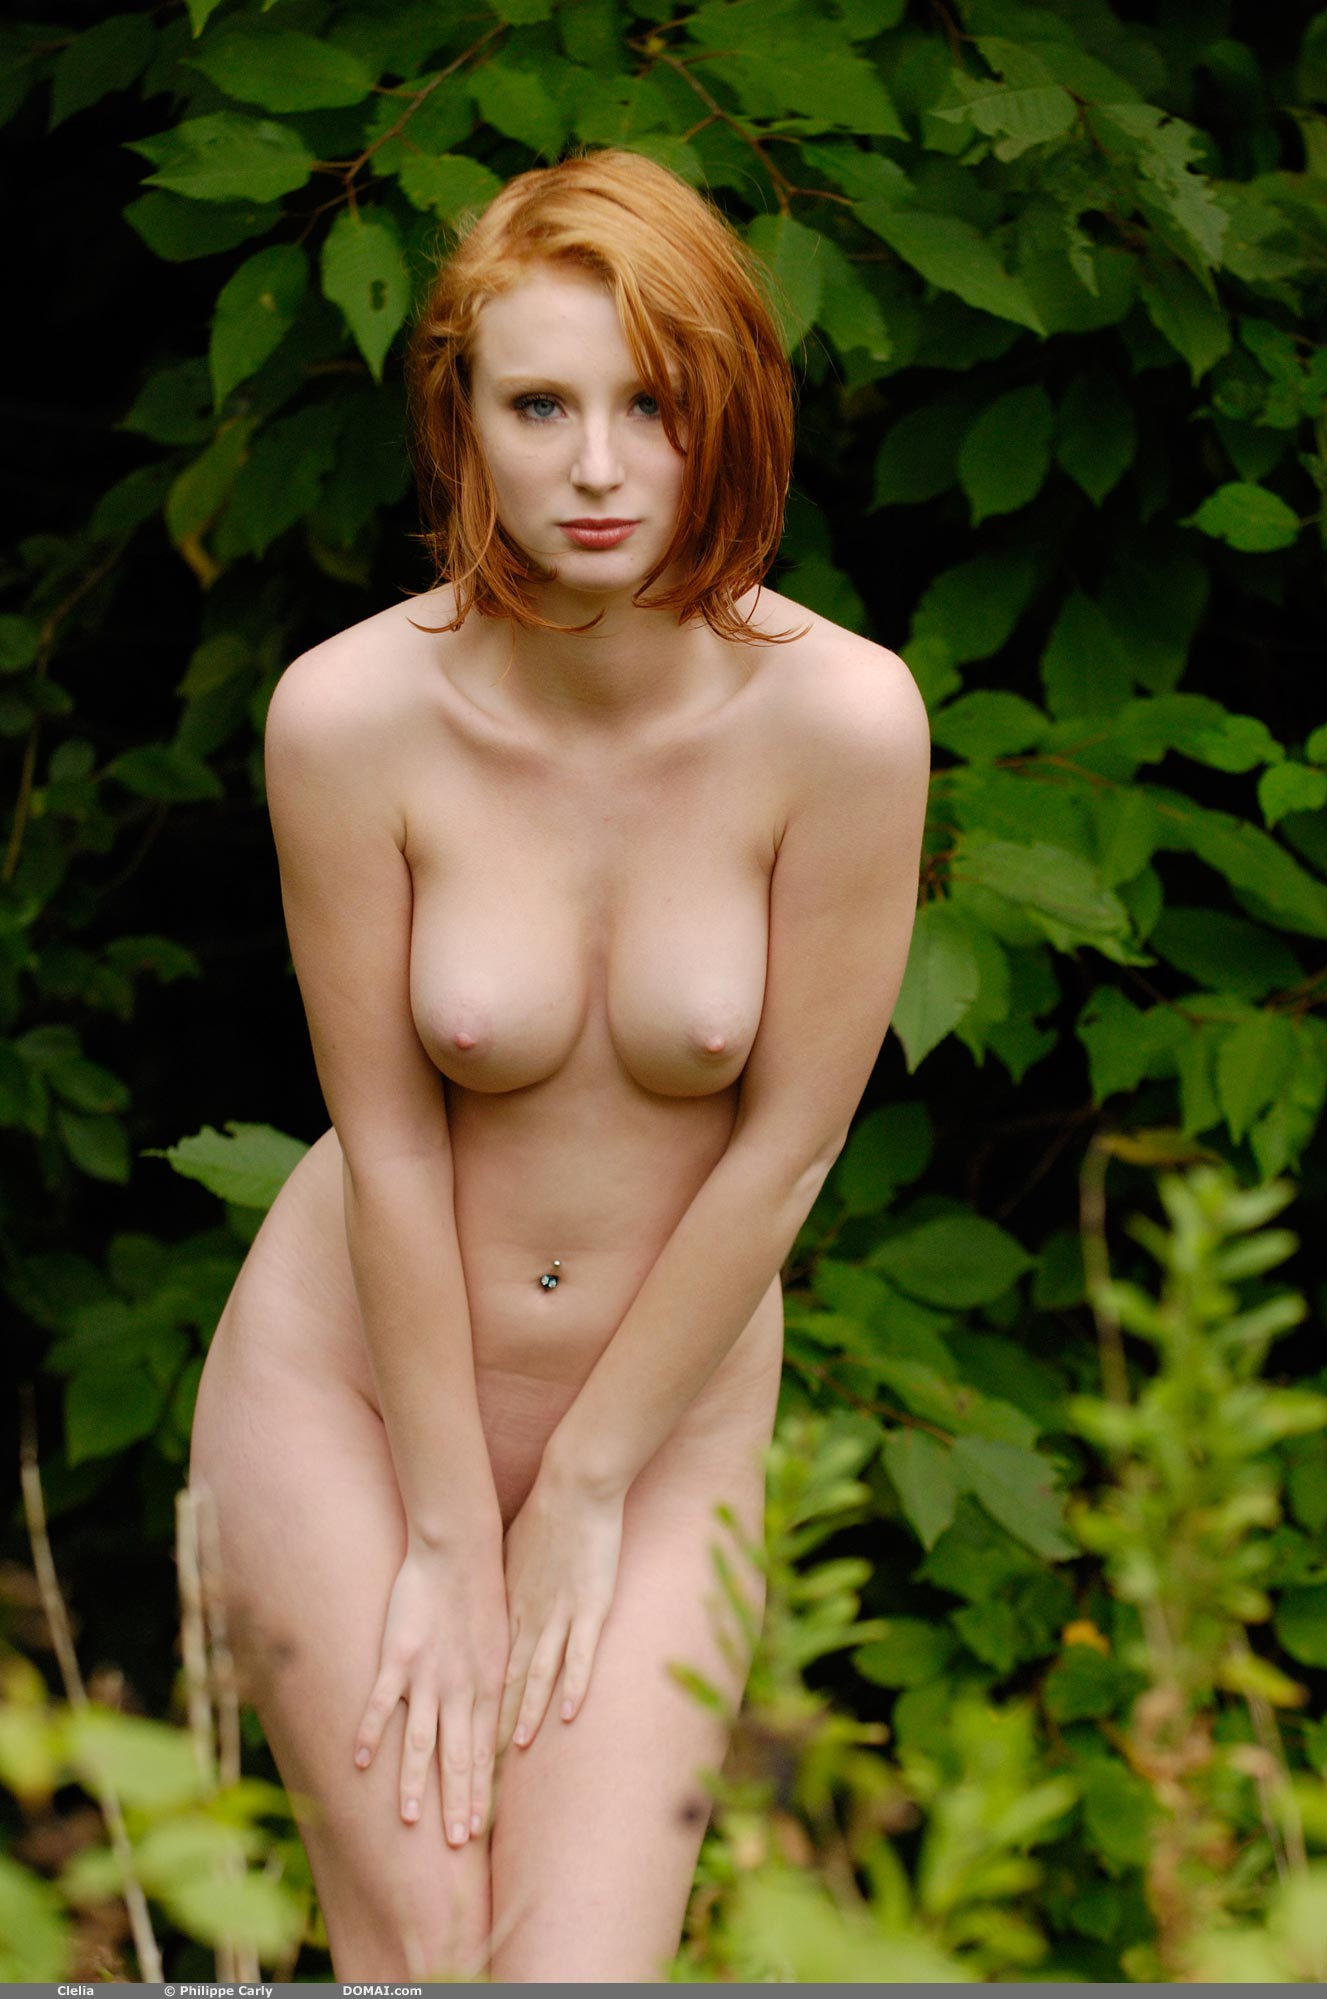 Can mascha domai nude model think